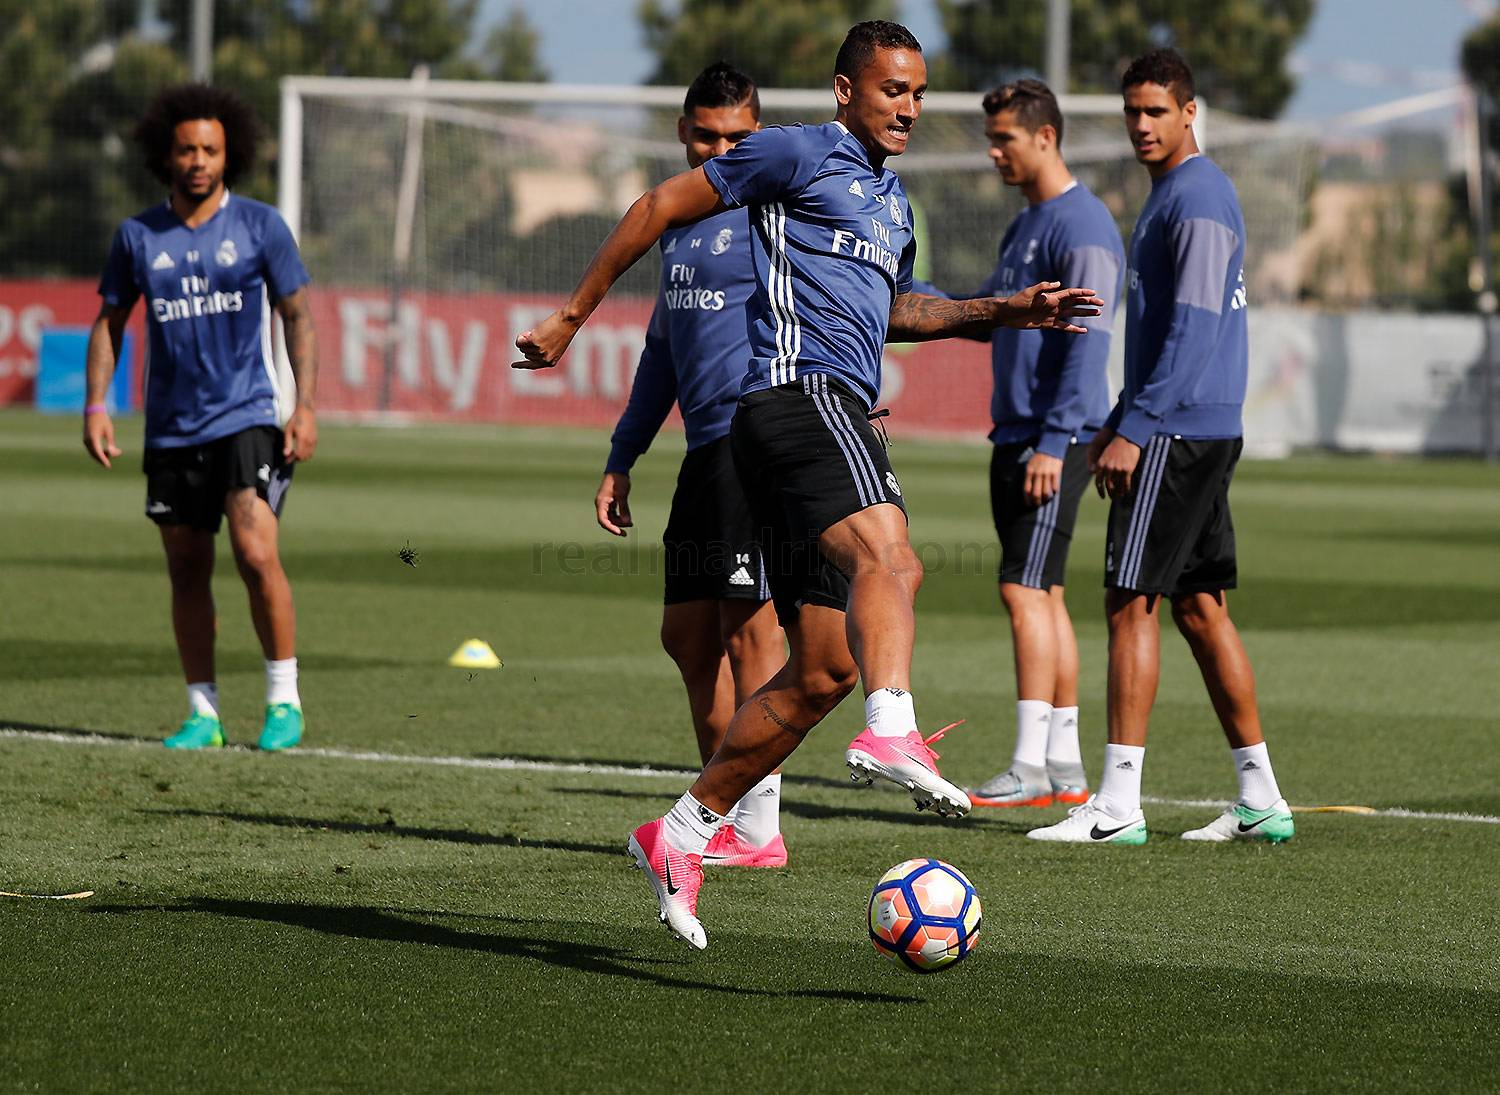 Real Madrid - Entrenamiento del Real Madrid - 22-04-2017